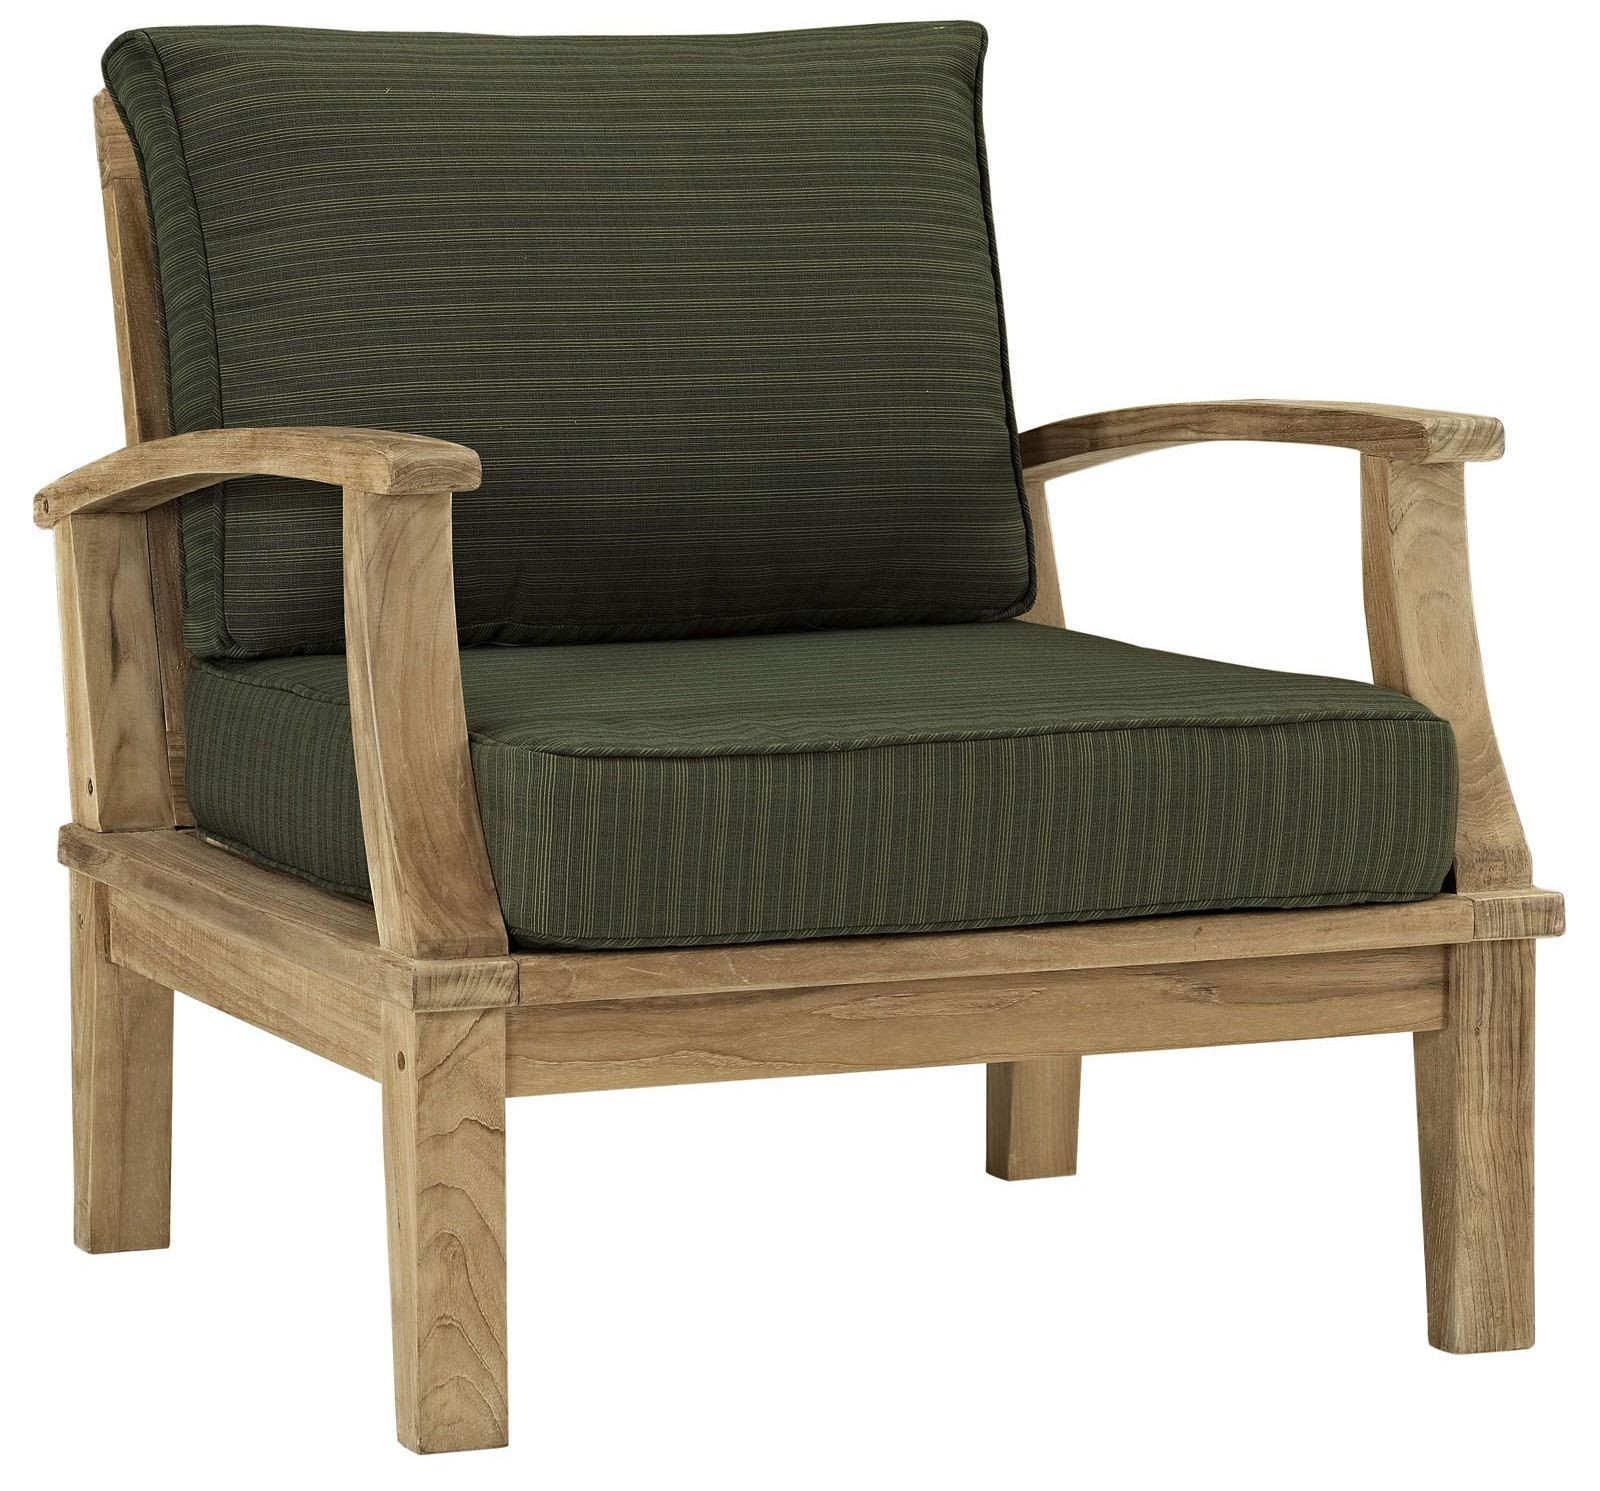 Marina Natural Green Outdoor Patio Teak Armchair From